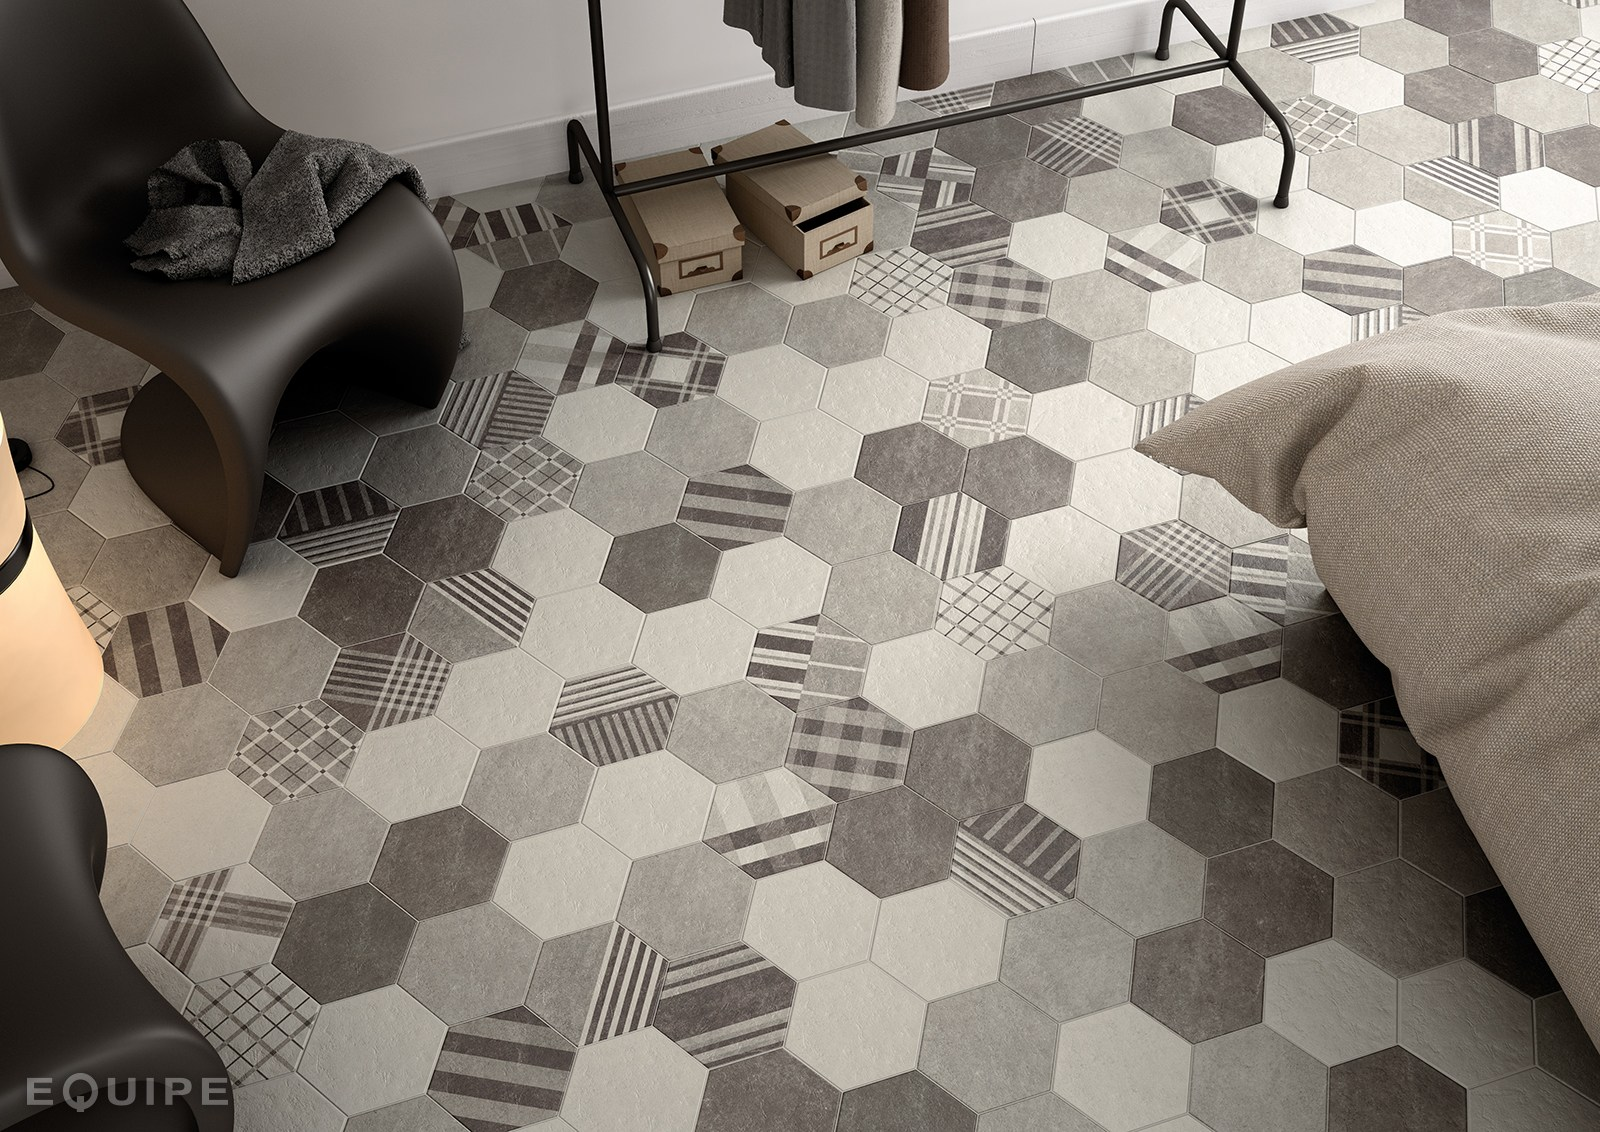 Hexatile cement wall floor tiles by equipe ceramicas - Equipe hexatile cement ...